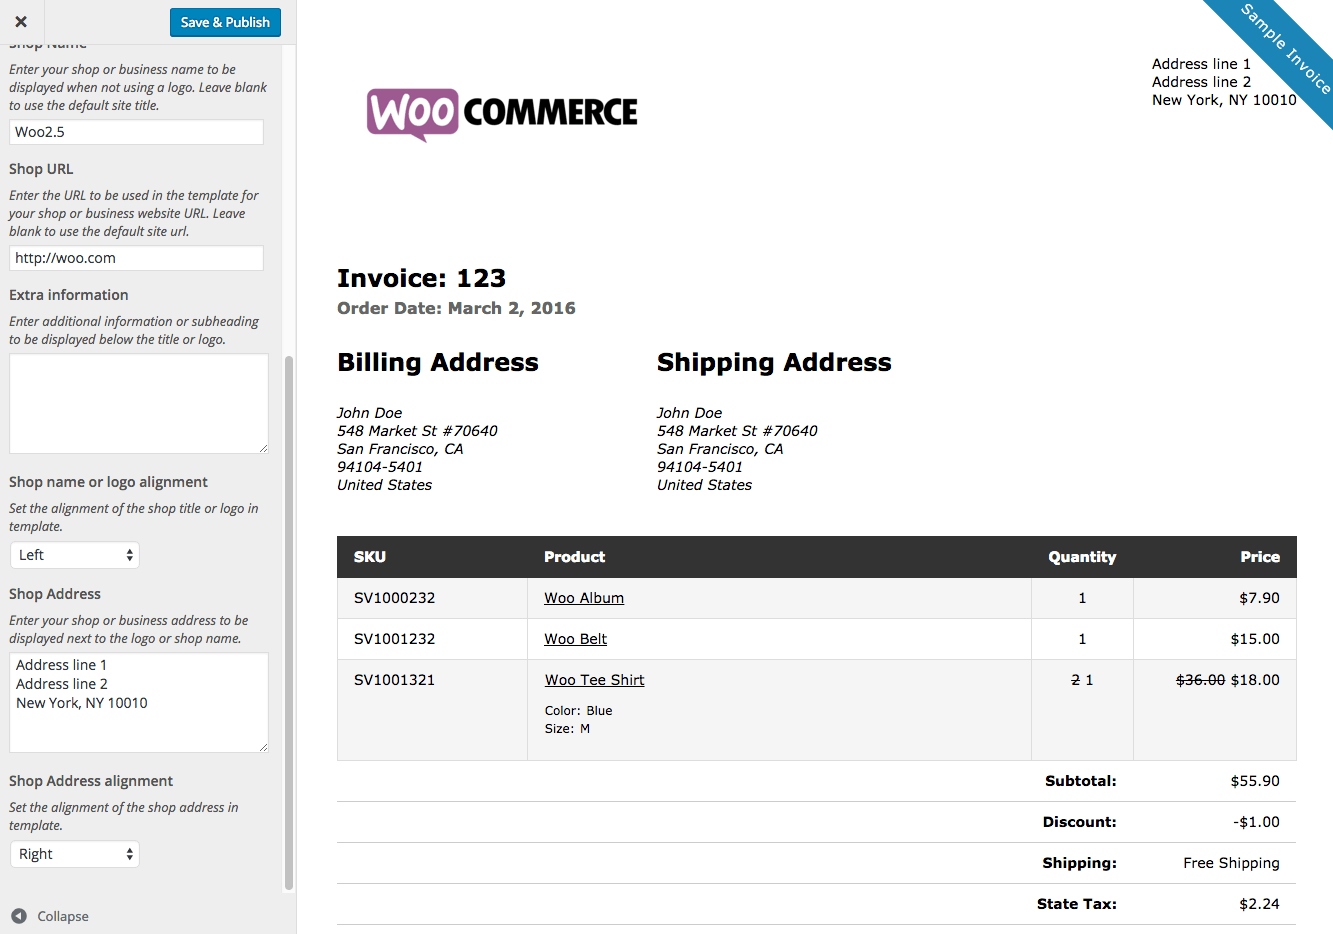 Ebitus  Ravishing Woocommerce Print Invoices Amp Packing Lists  Woocommerce Docs With Excellent Woocommerce Print Invoices  Packing Lists Customizer With Appealing Small Business Invoice Template Also Overdue Invoice In Addition Lawn Care Invoice Template And Mazda Cx  Invoice Price As Well As Work Order Invoice Additionally Invoice Template Word Download Free From Docswoocommercecom With Ebitus  Excellent Woocommerce Print Invoices Amp Packing Lists  Woocommerce Docs With Appealing Woocommerce Print Invoices  Packing Lists Customizer And Ravishing Small Business Invoice Template Also Overdue Invoice In Addition Lawn Care Invoice Template From Docswoocommercecom